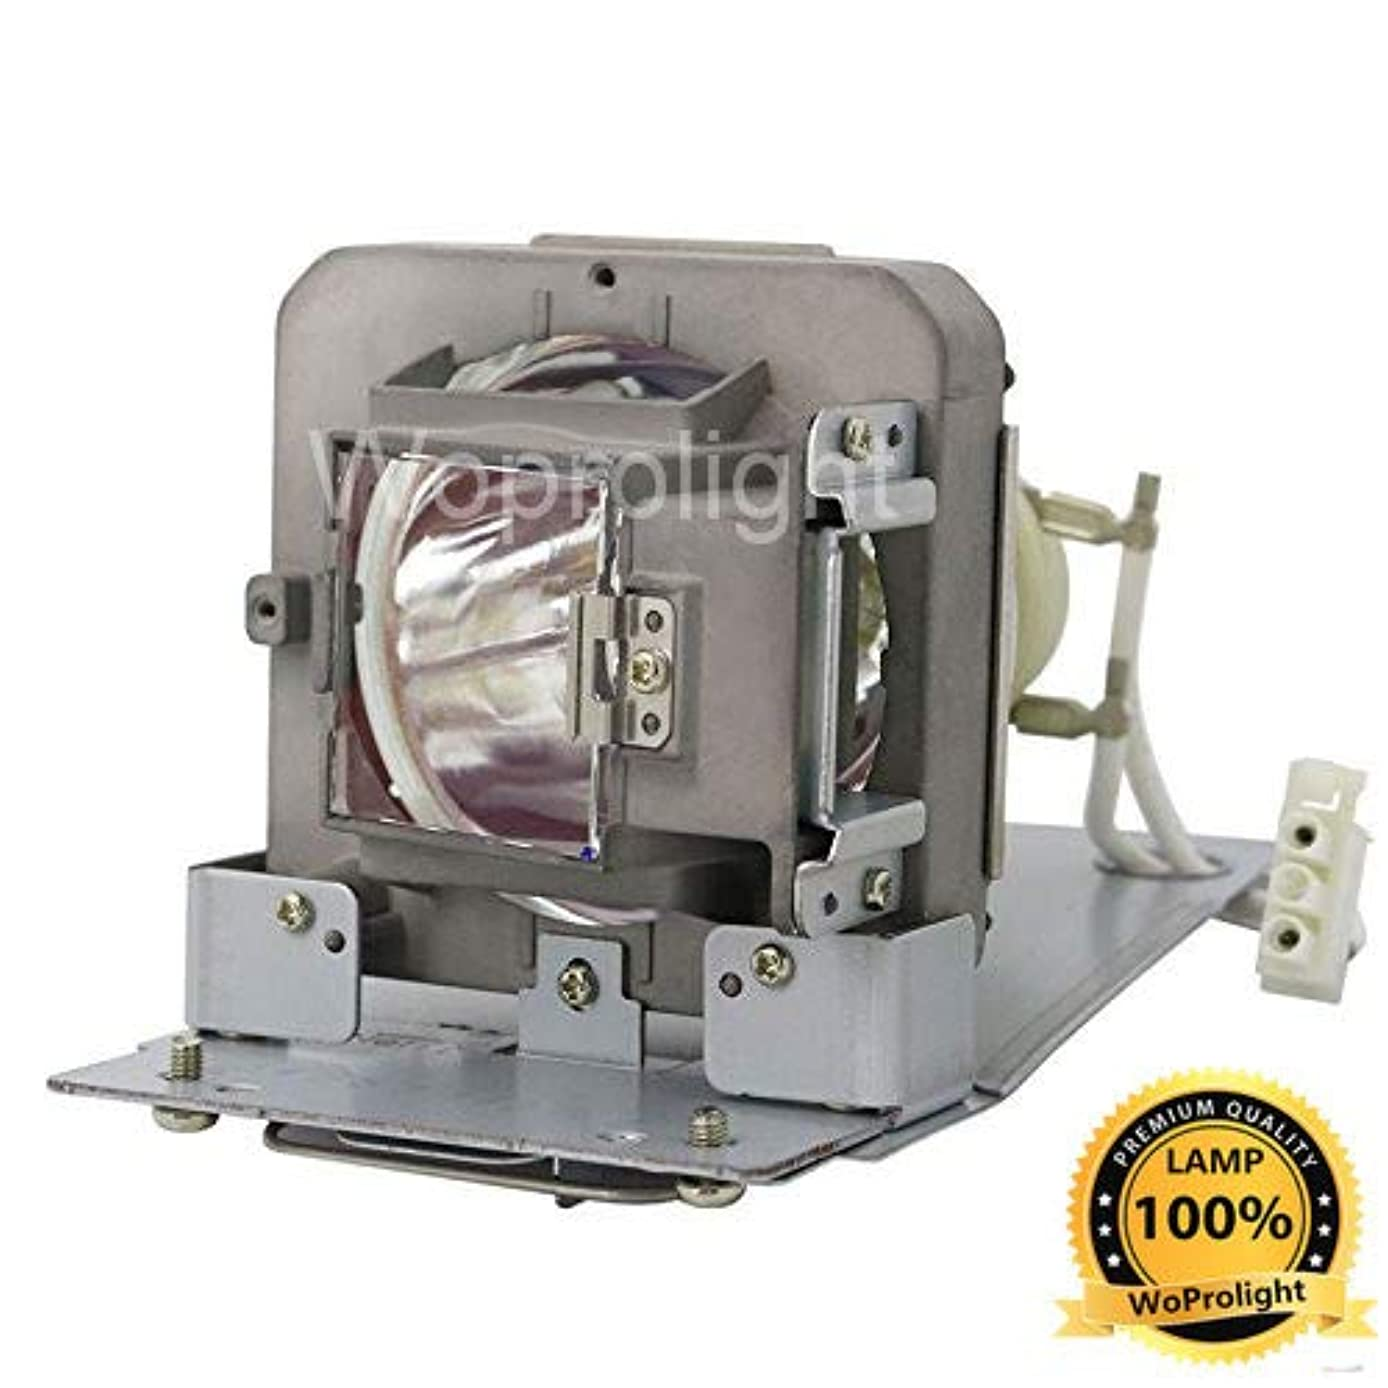 for Benq 5J.JEA05.001/5J.JCM05.001 Replacement Premium Quality Projector Lamp for BENQ MH750 MW727 MX726 MH741 Projector by WoProlight